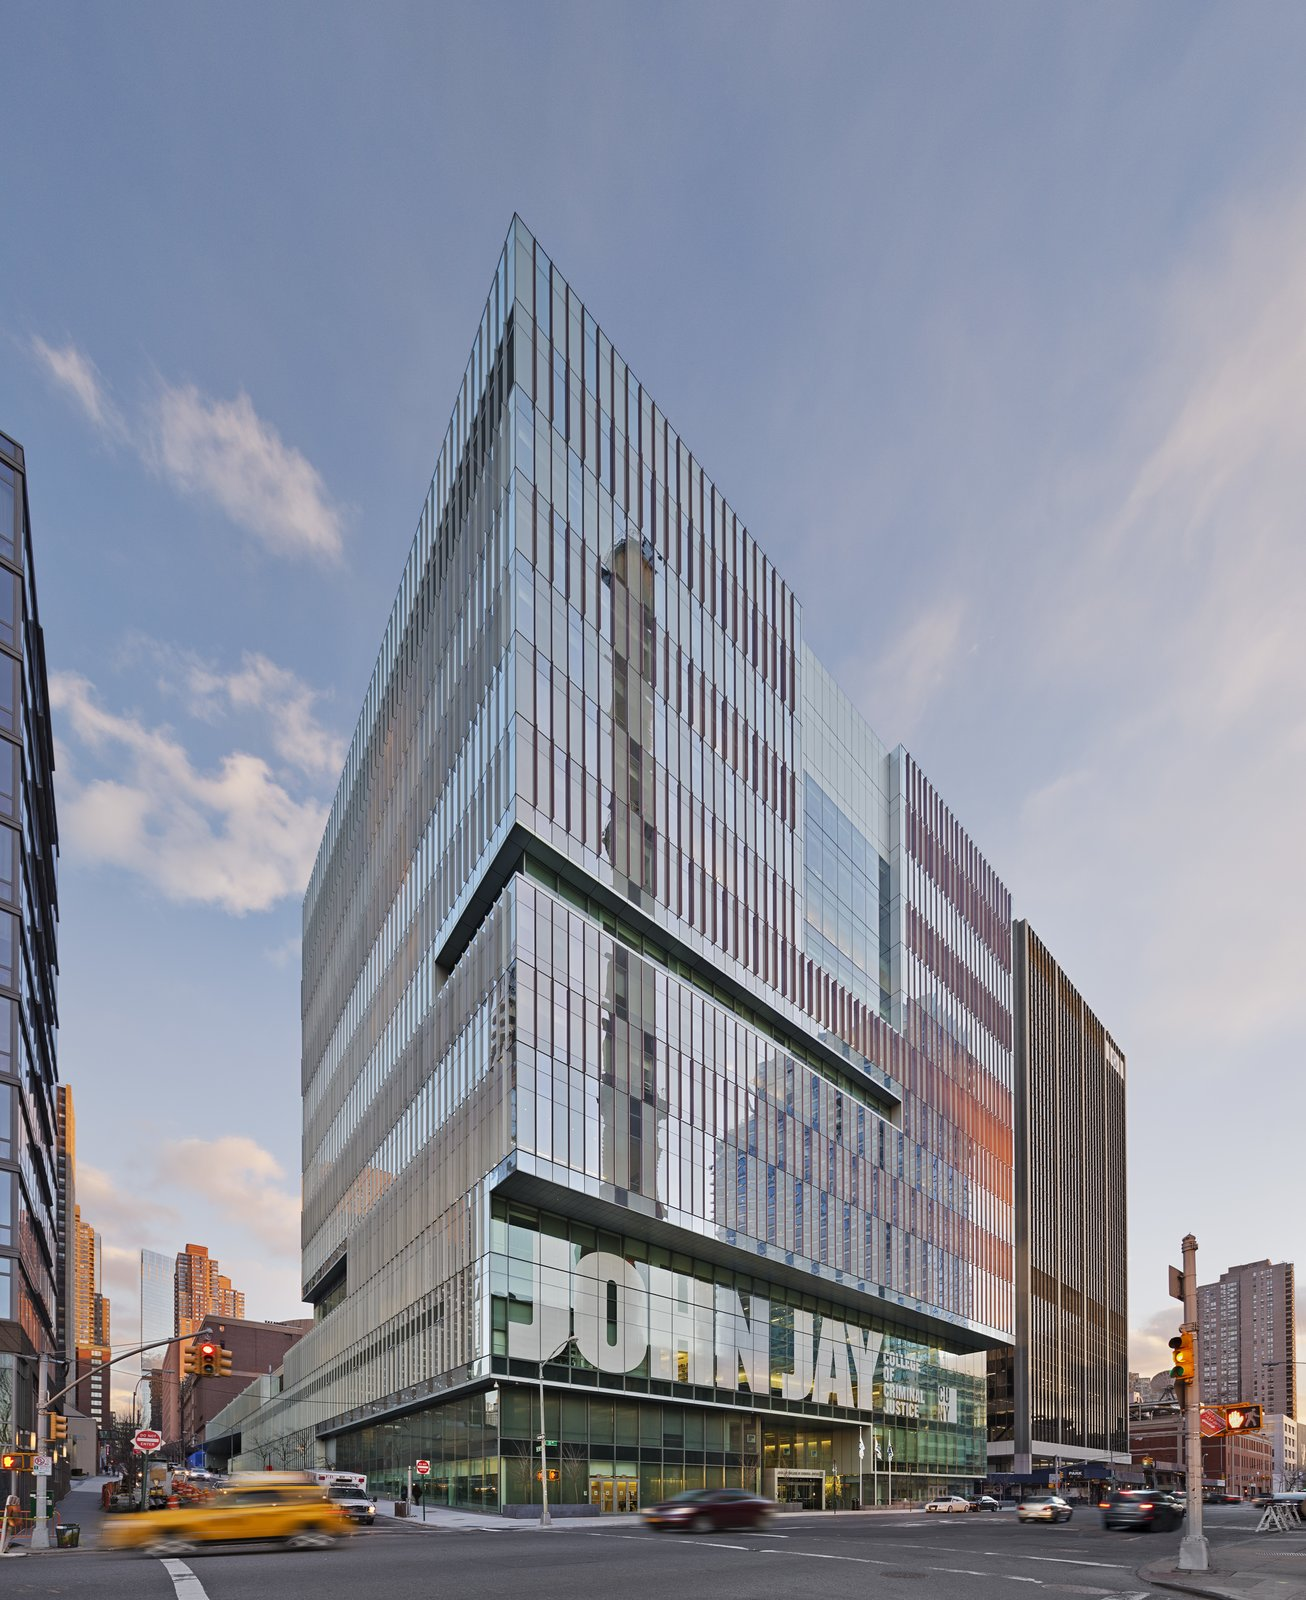 October 18 Building of the Day: John Jay College of Criminal Justice  Skidmore, Owings & Merrill LLP   Photo credit: Copyright Eduard Hueber/Archphoto Inc.   2013 Buildings of the Day by Archtober